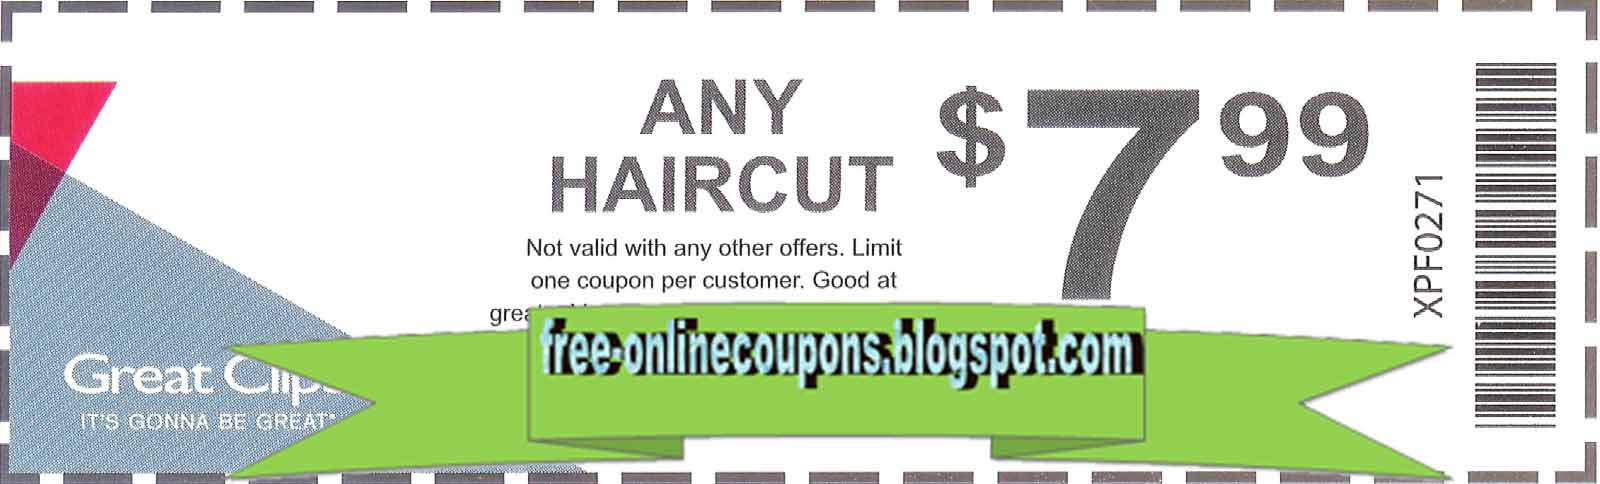 picture relating to Printable Great Clips Coupons named Best Clips Discount coupons 12222